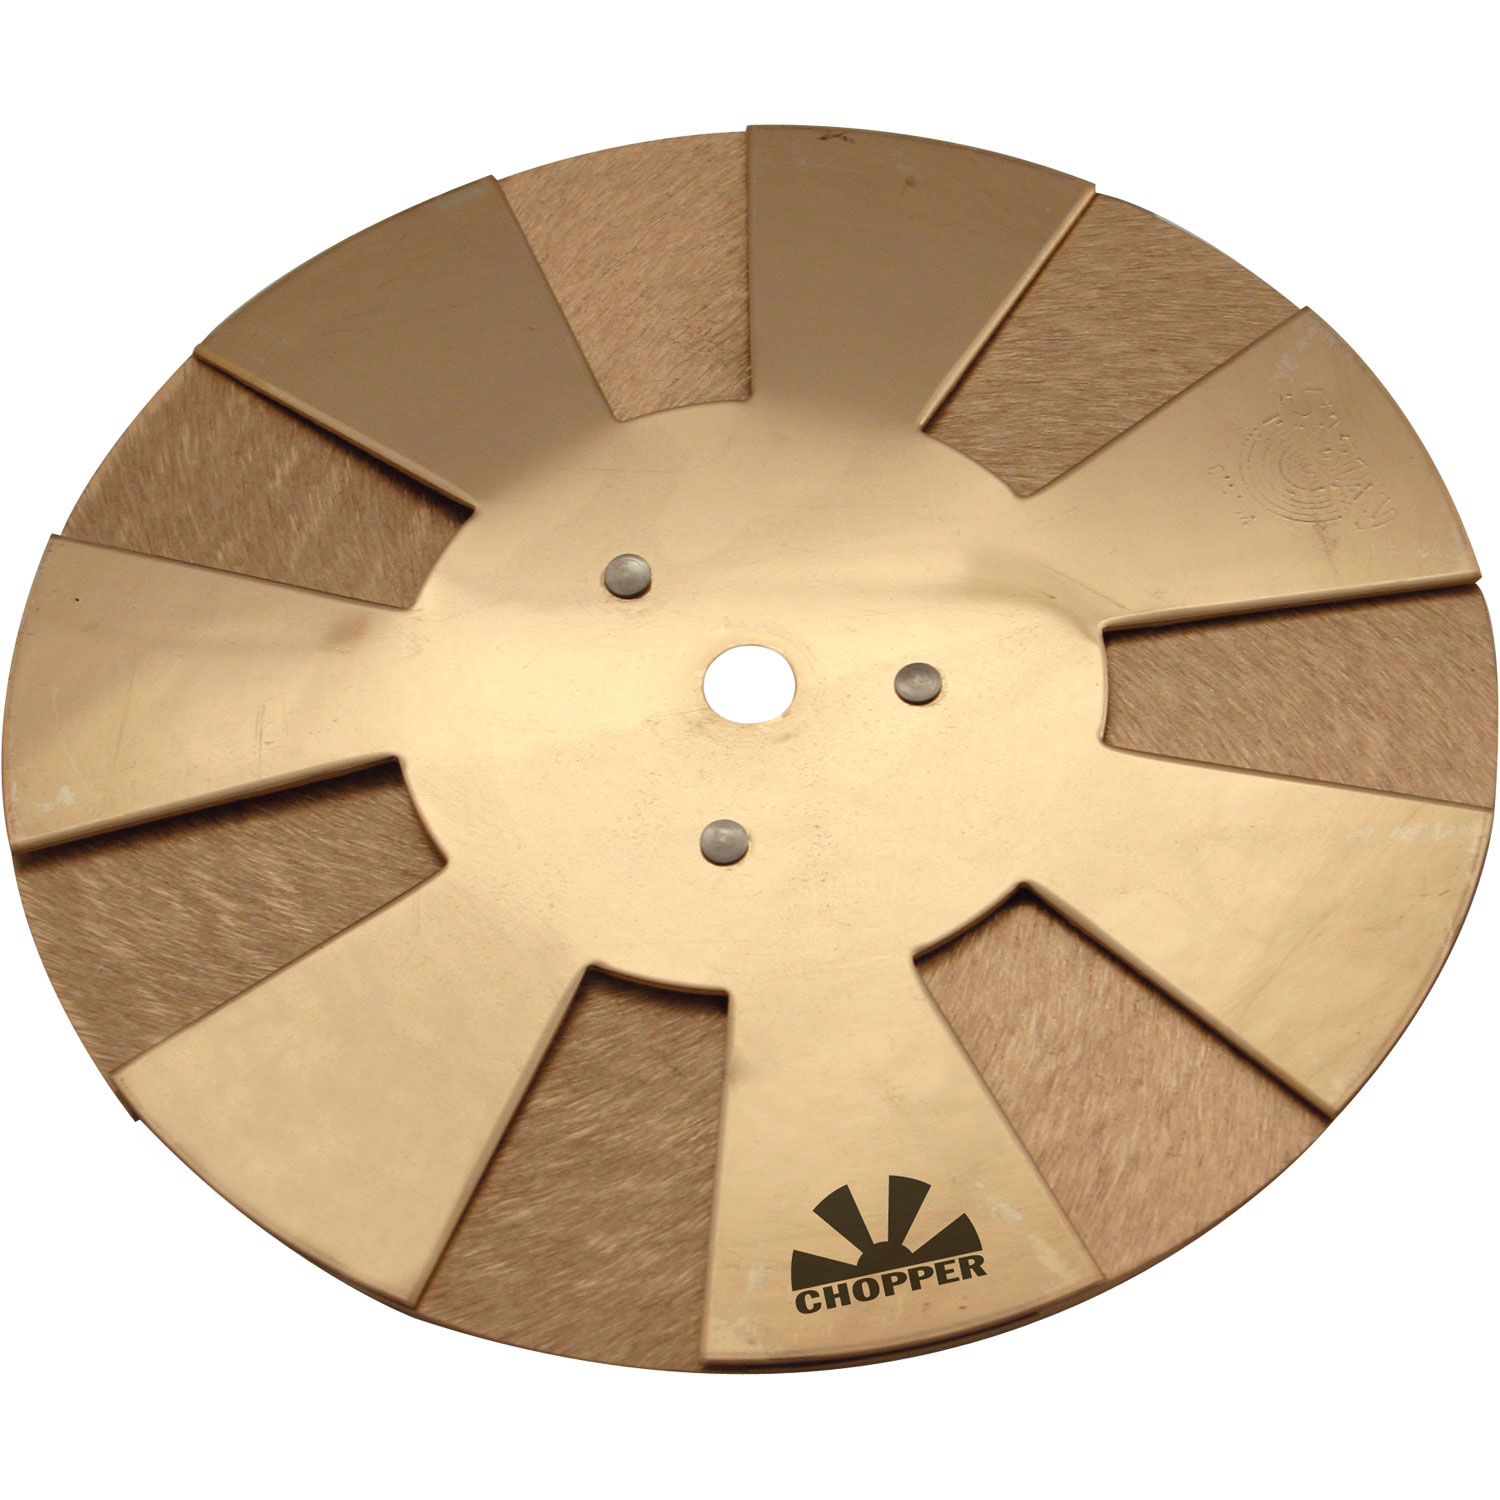 "Sabian 12"" Chopper with Natural Finish"